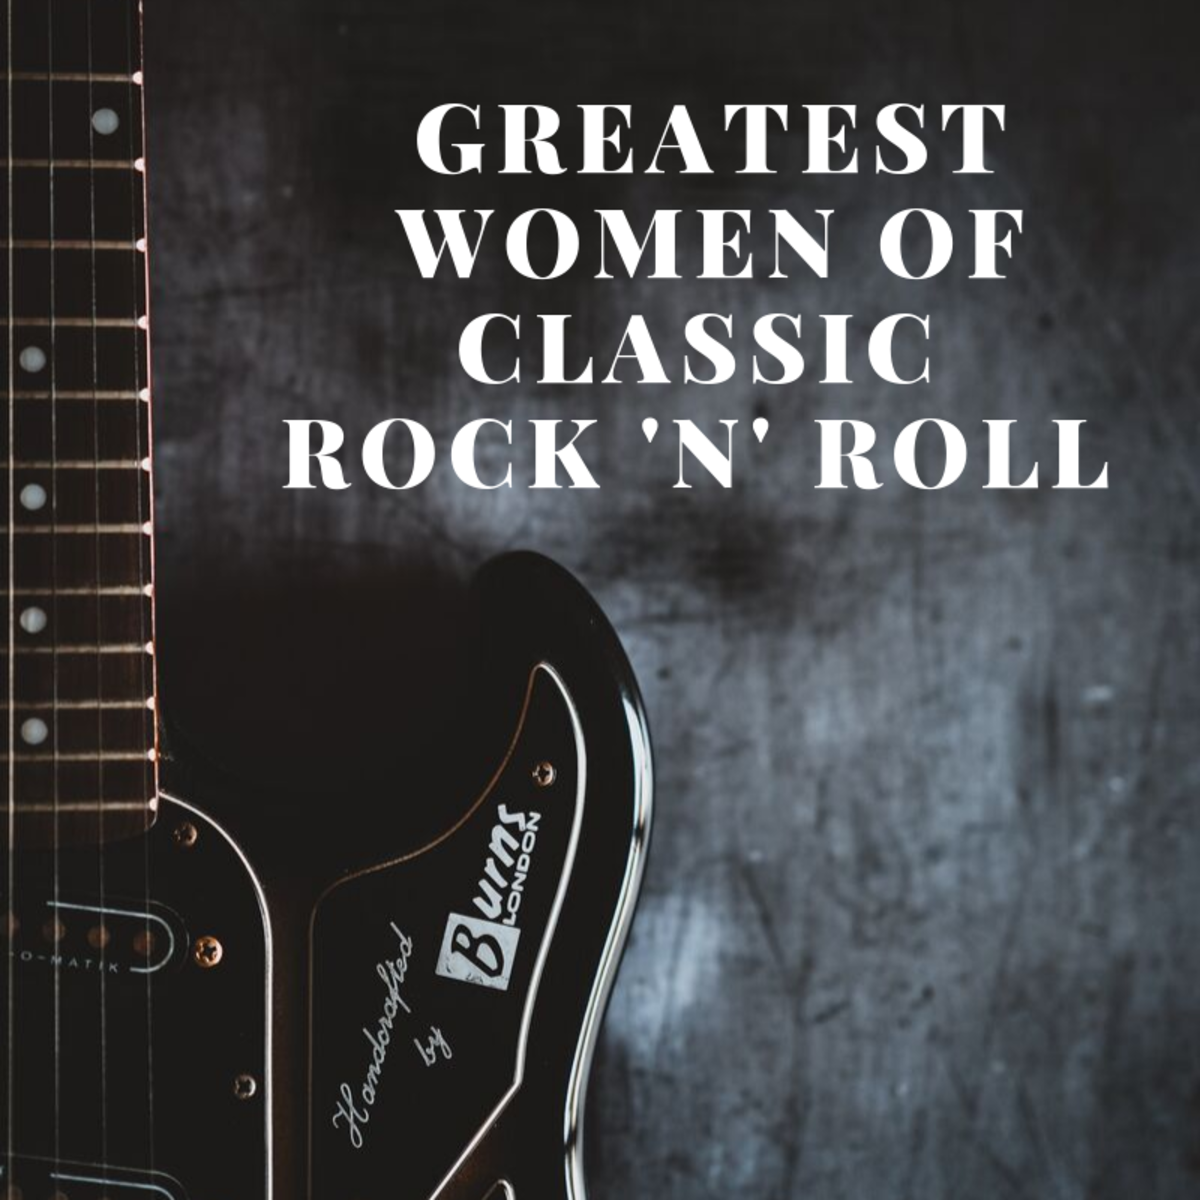 These amazing female musicians will make you want to head bang along to every powerful riff!